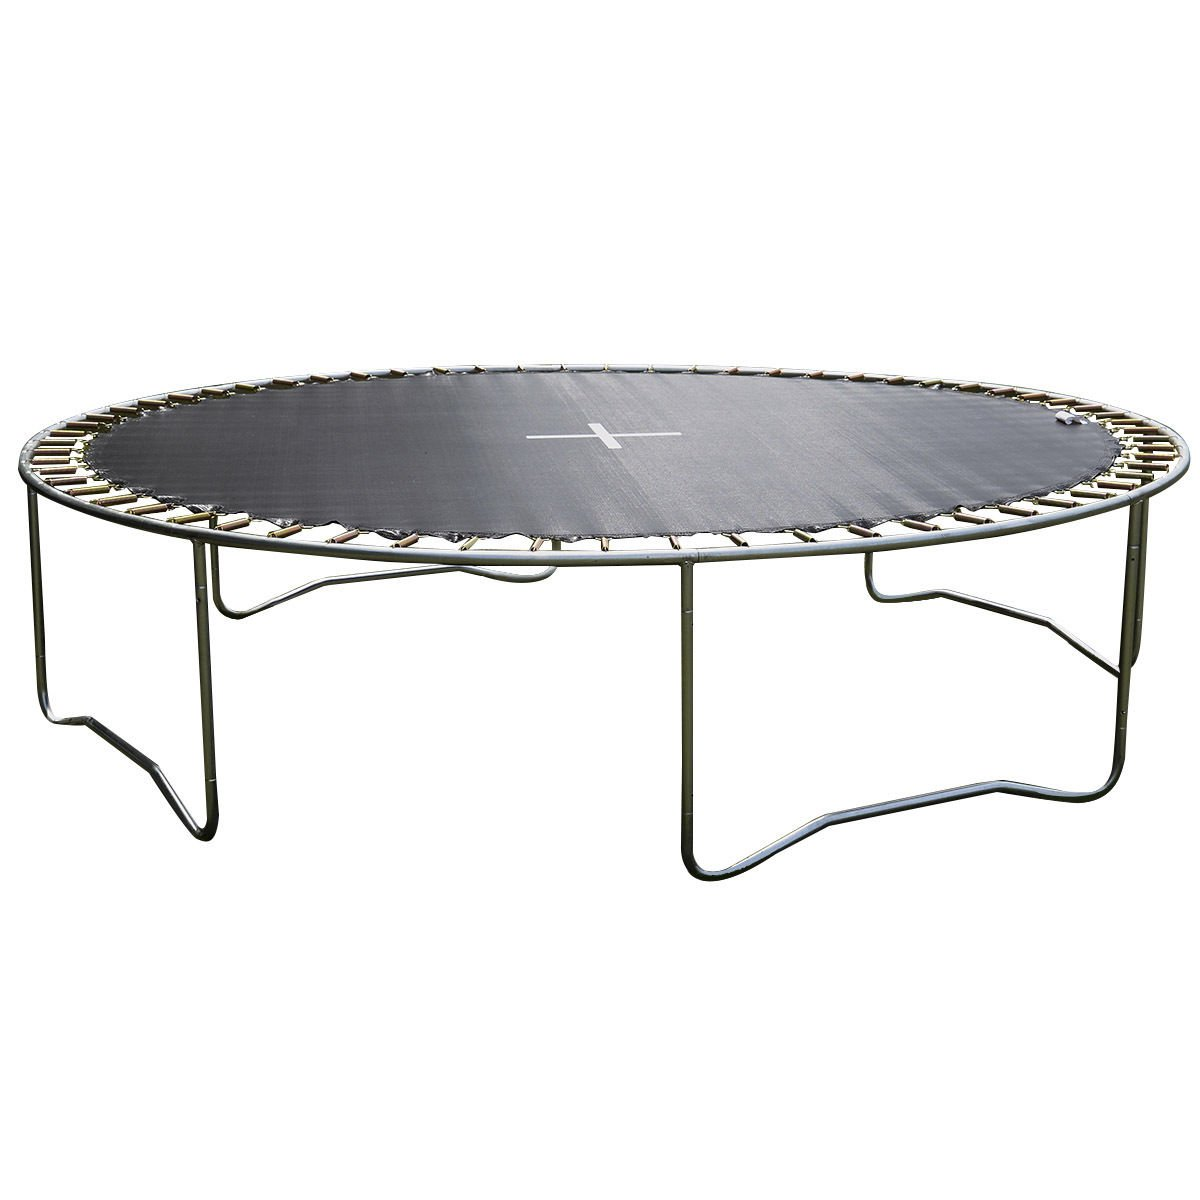 Jumping Mat 12.4' For 14' Trampoline Replacement 72Ring 5